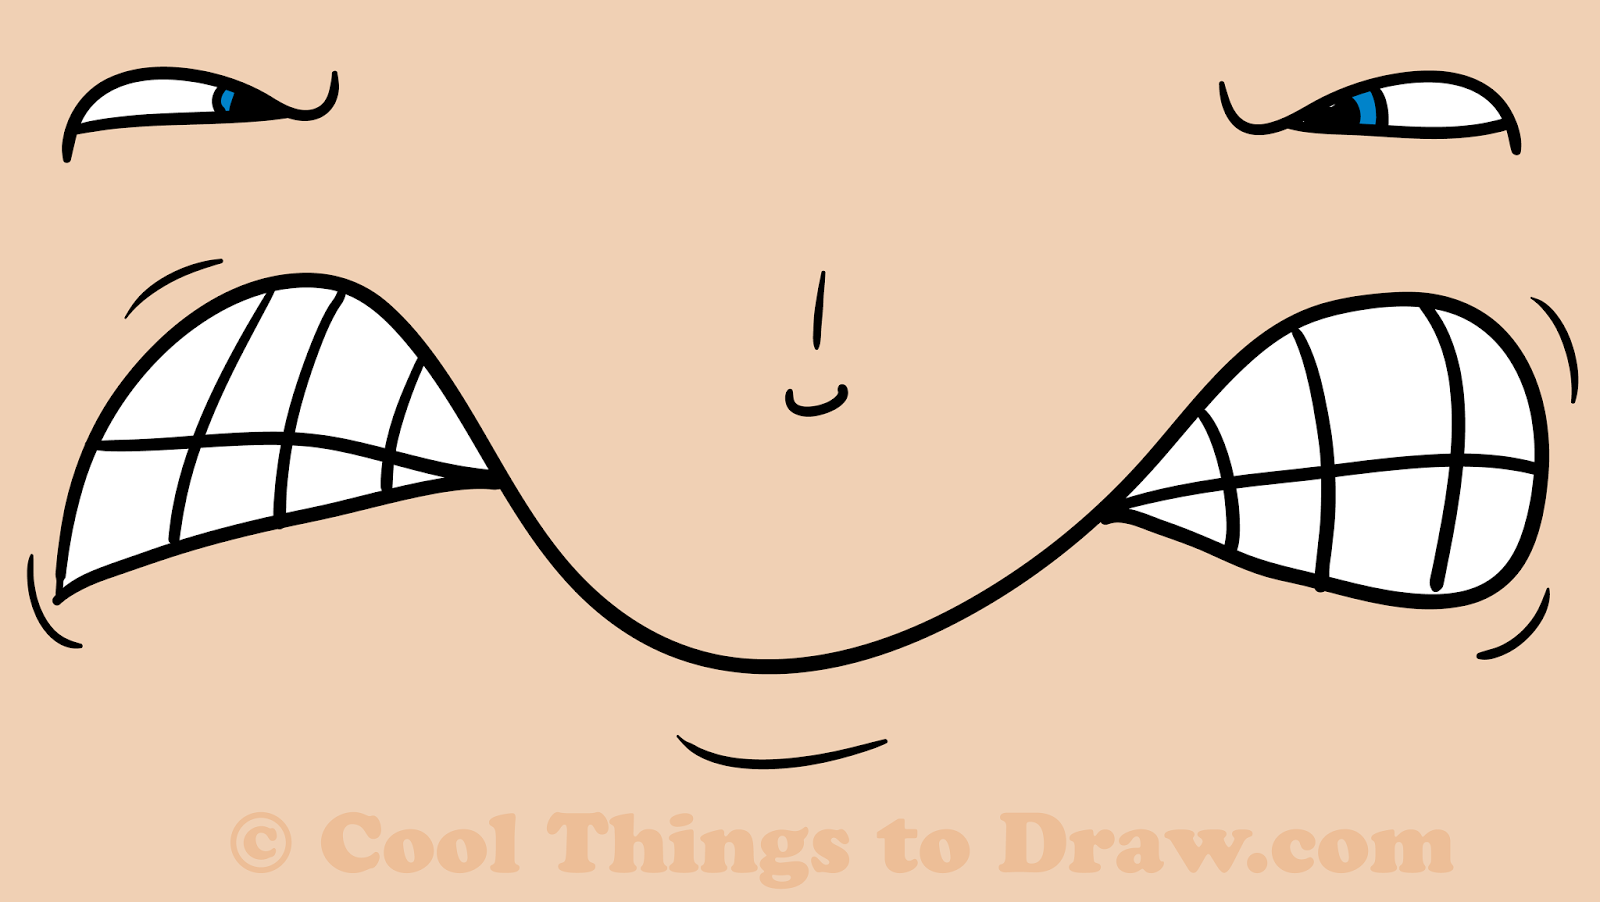 Drawing ideas for kids cool easy things to draw for kids Simple drawing ideas for kids